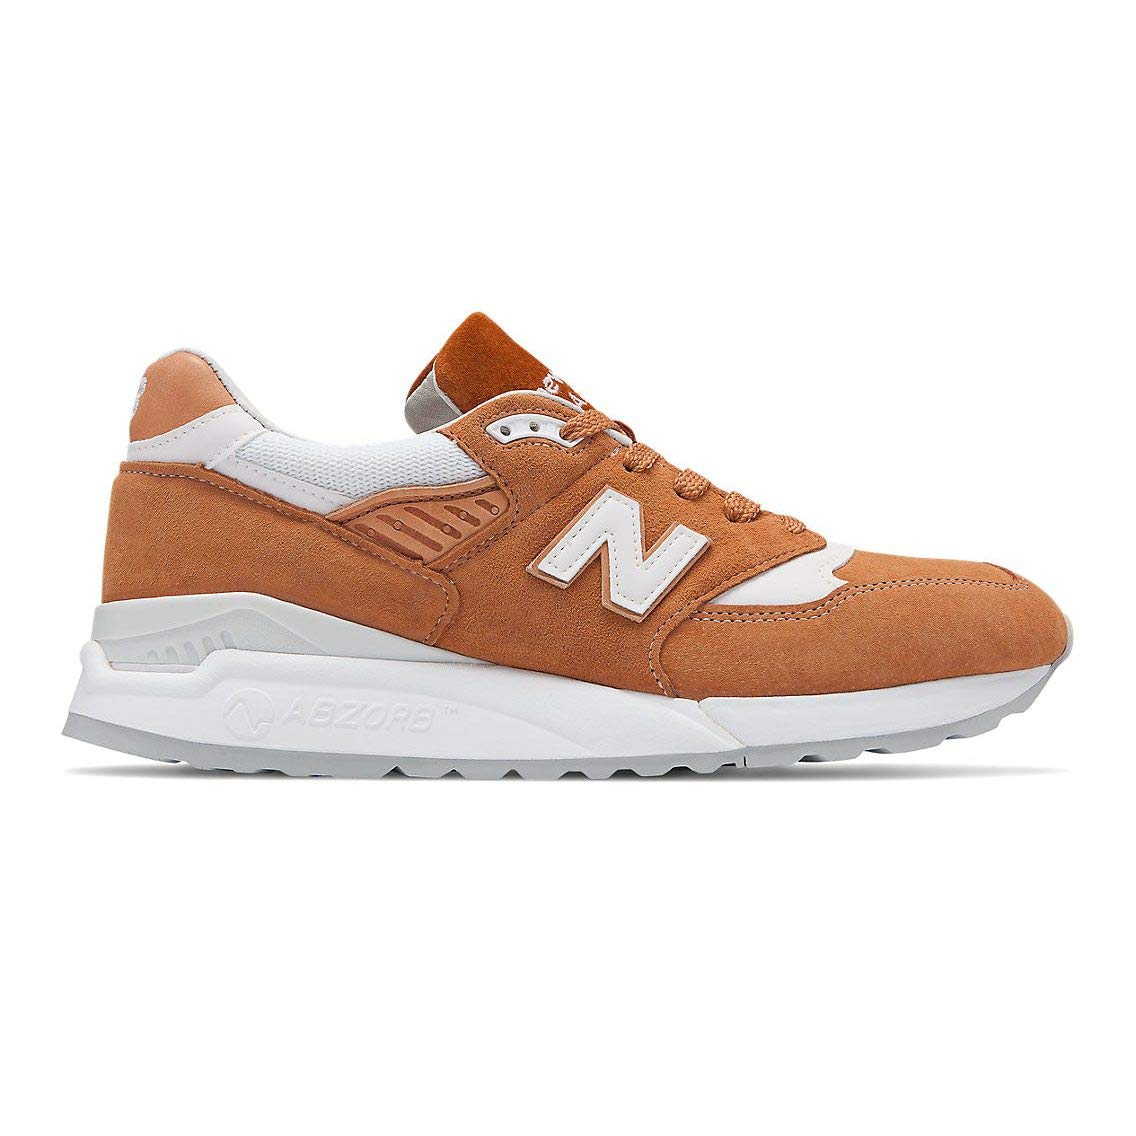 NewBalance M999 D Leather Synthetic - jta rot, Größe 9(42.5)